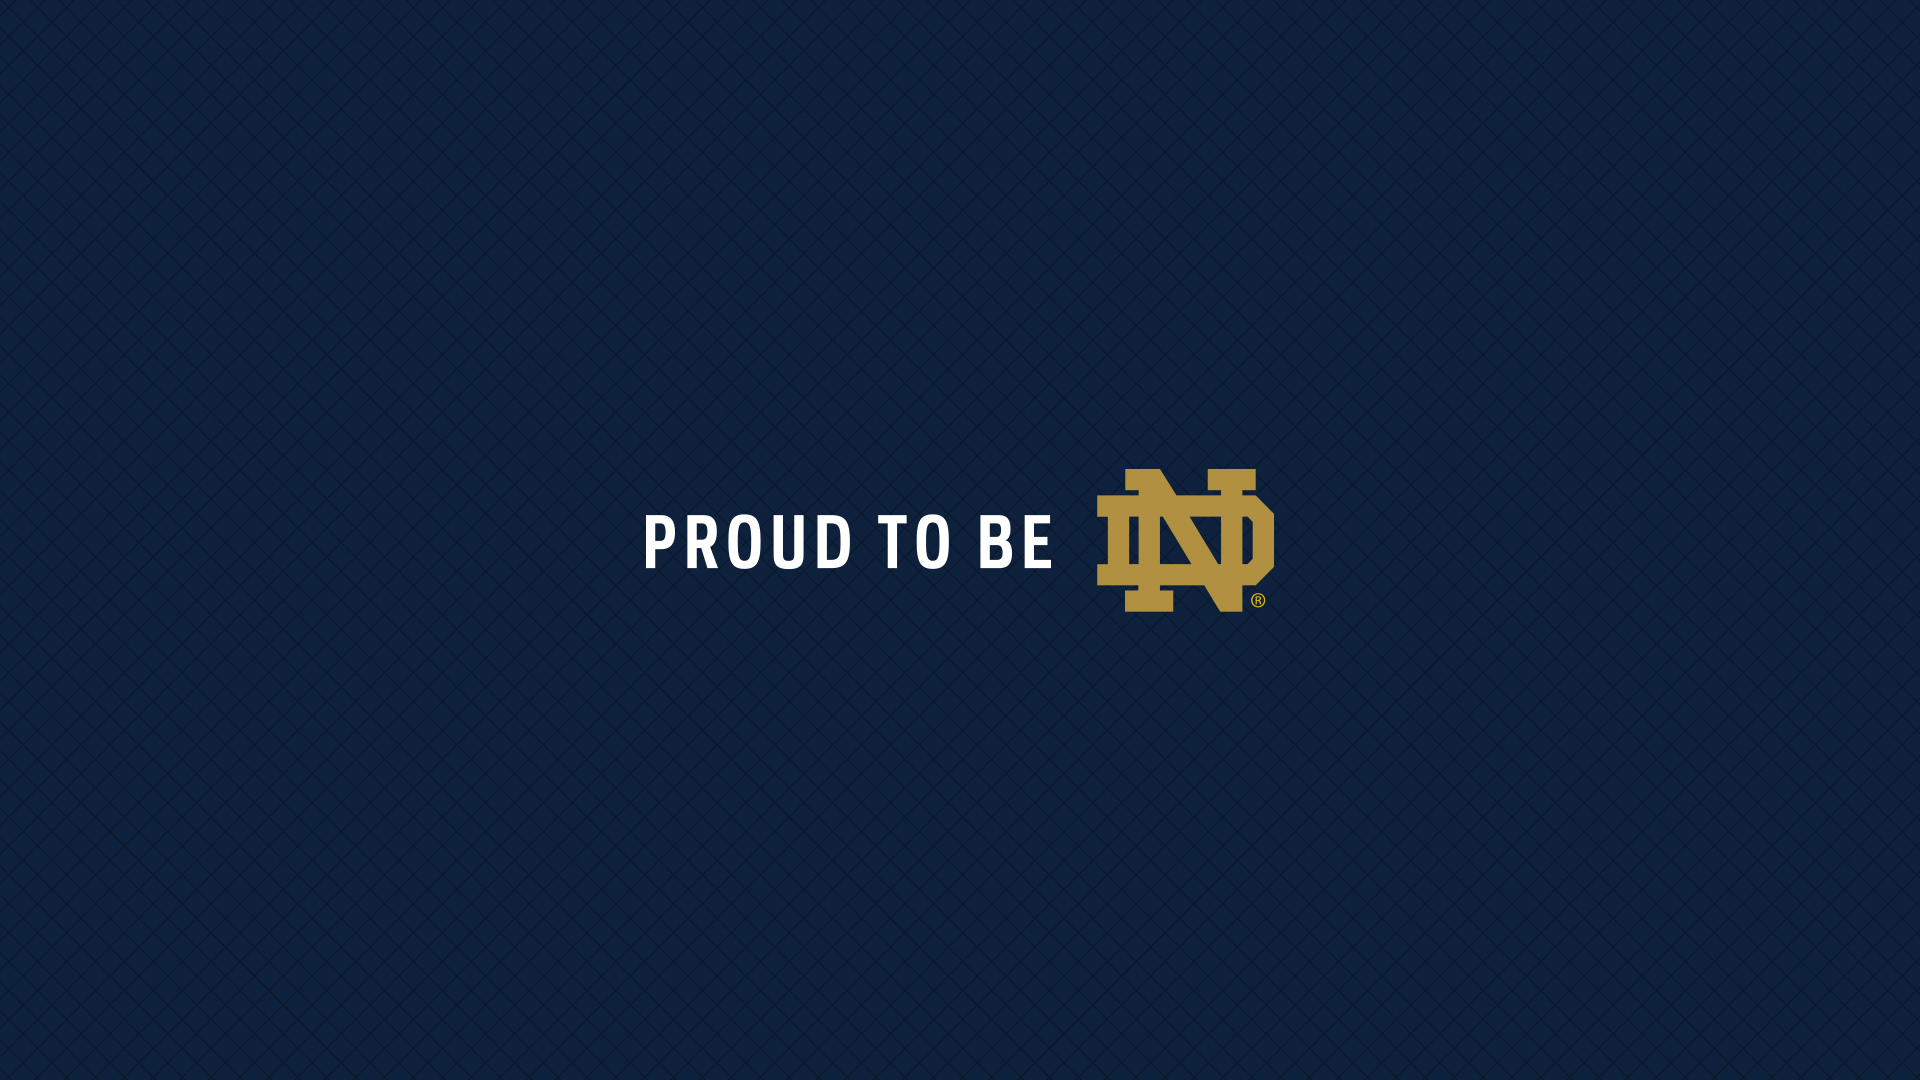 Logo   Proud To Be ND Wallpaper For Widescreen HD Wallpapers For 1920x1080